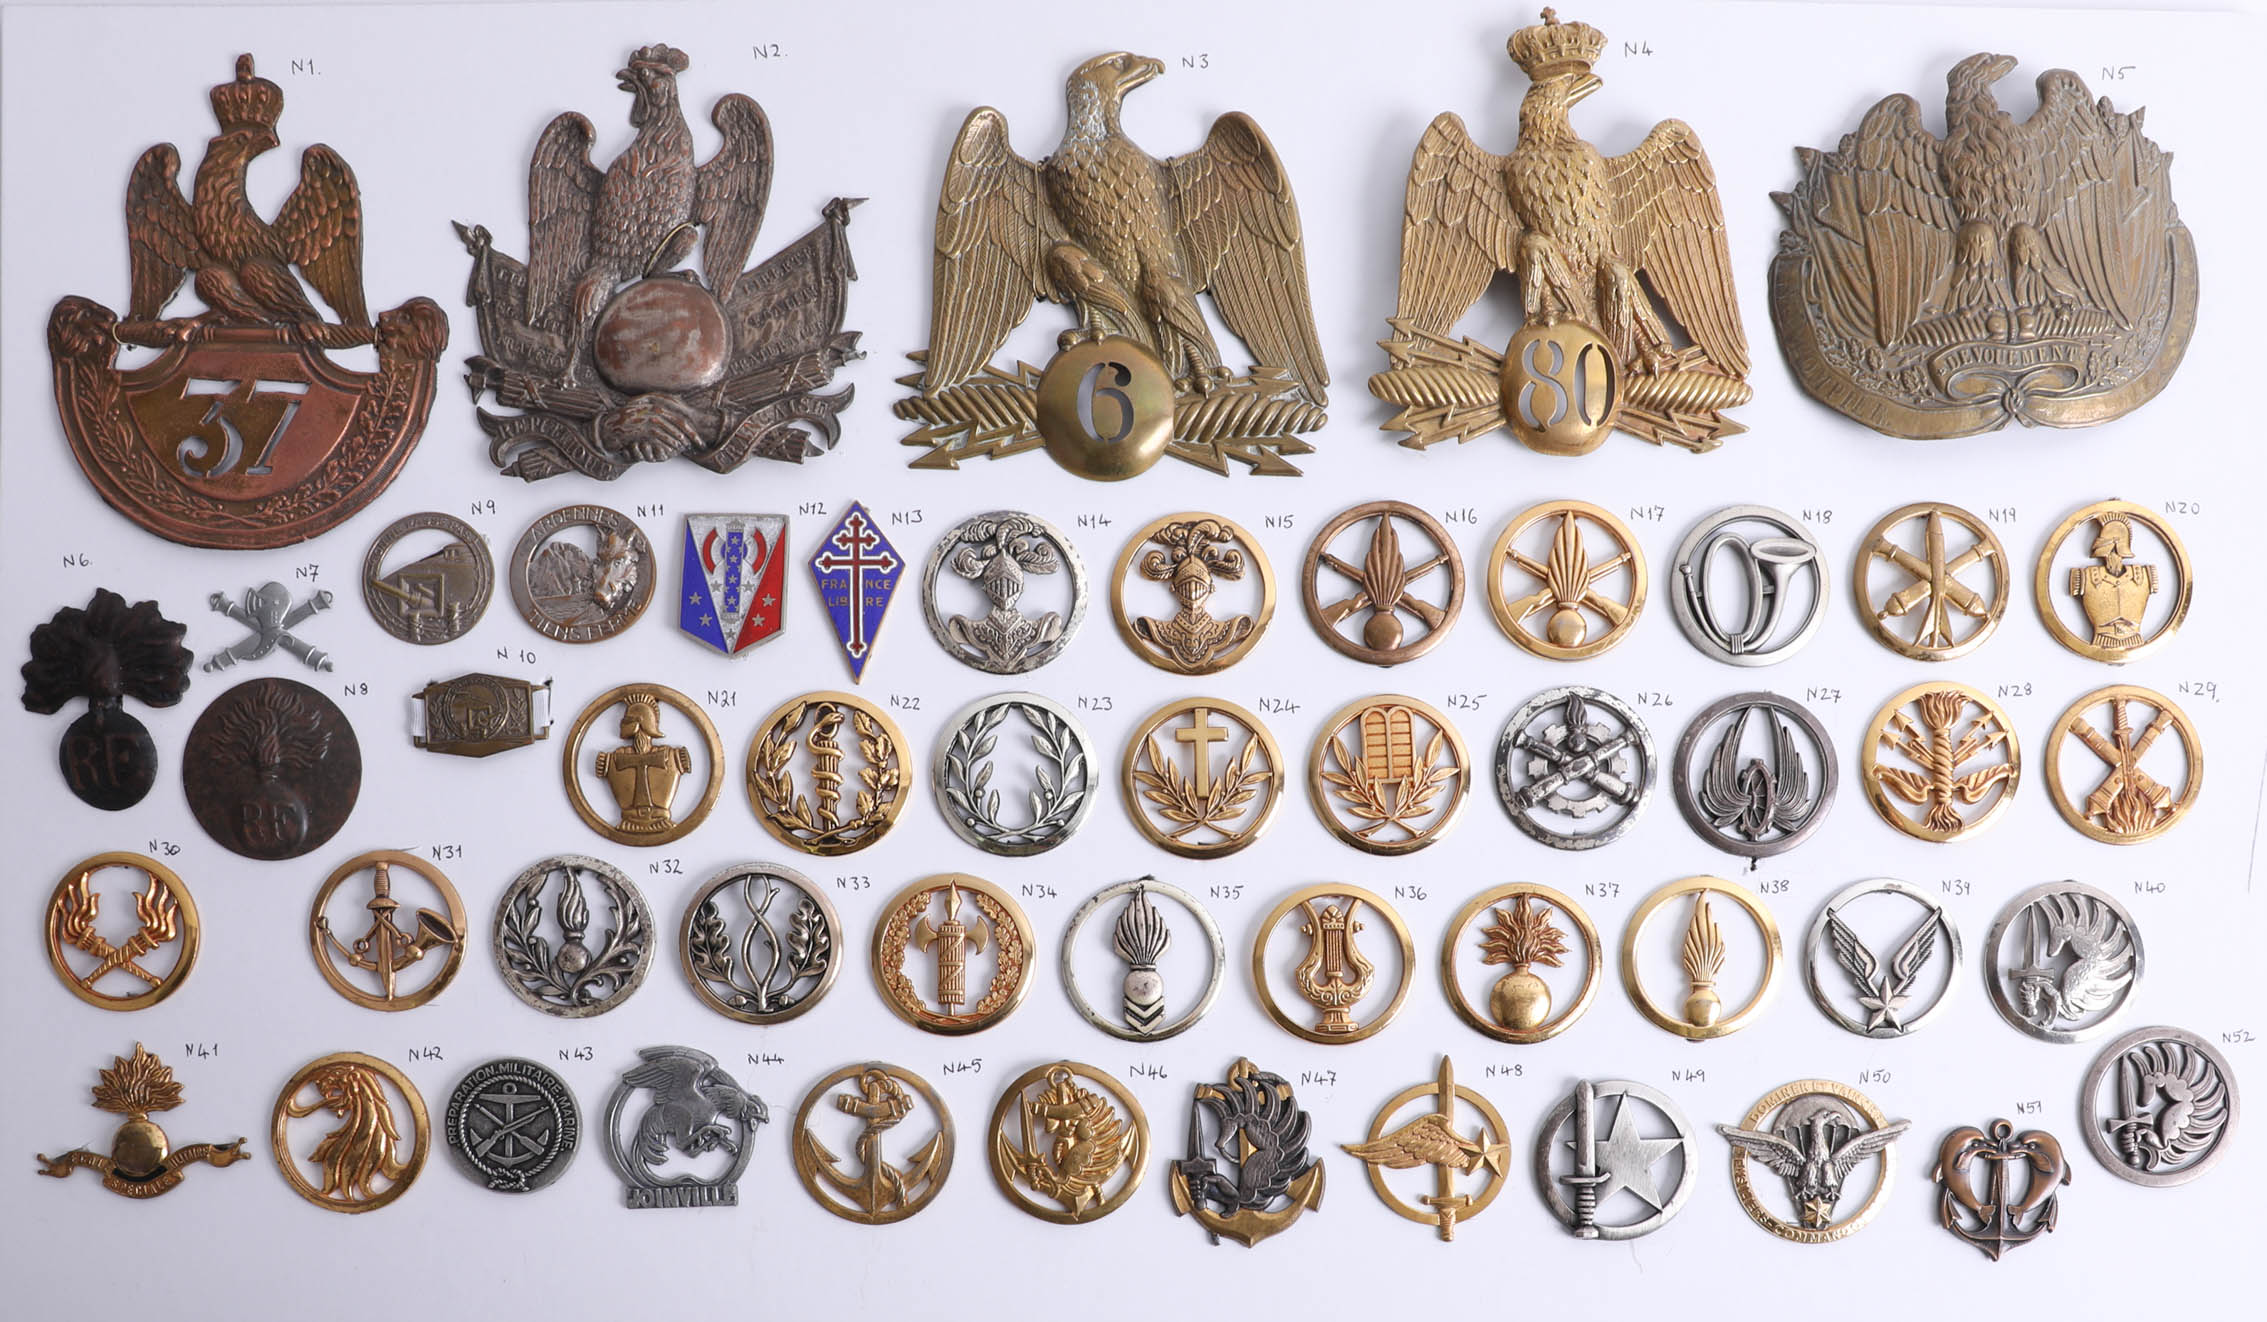 Lot 014 - A collection of approx. 52 military cap badges including 19th century French shako plates also